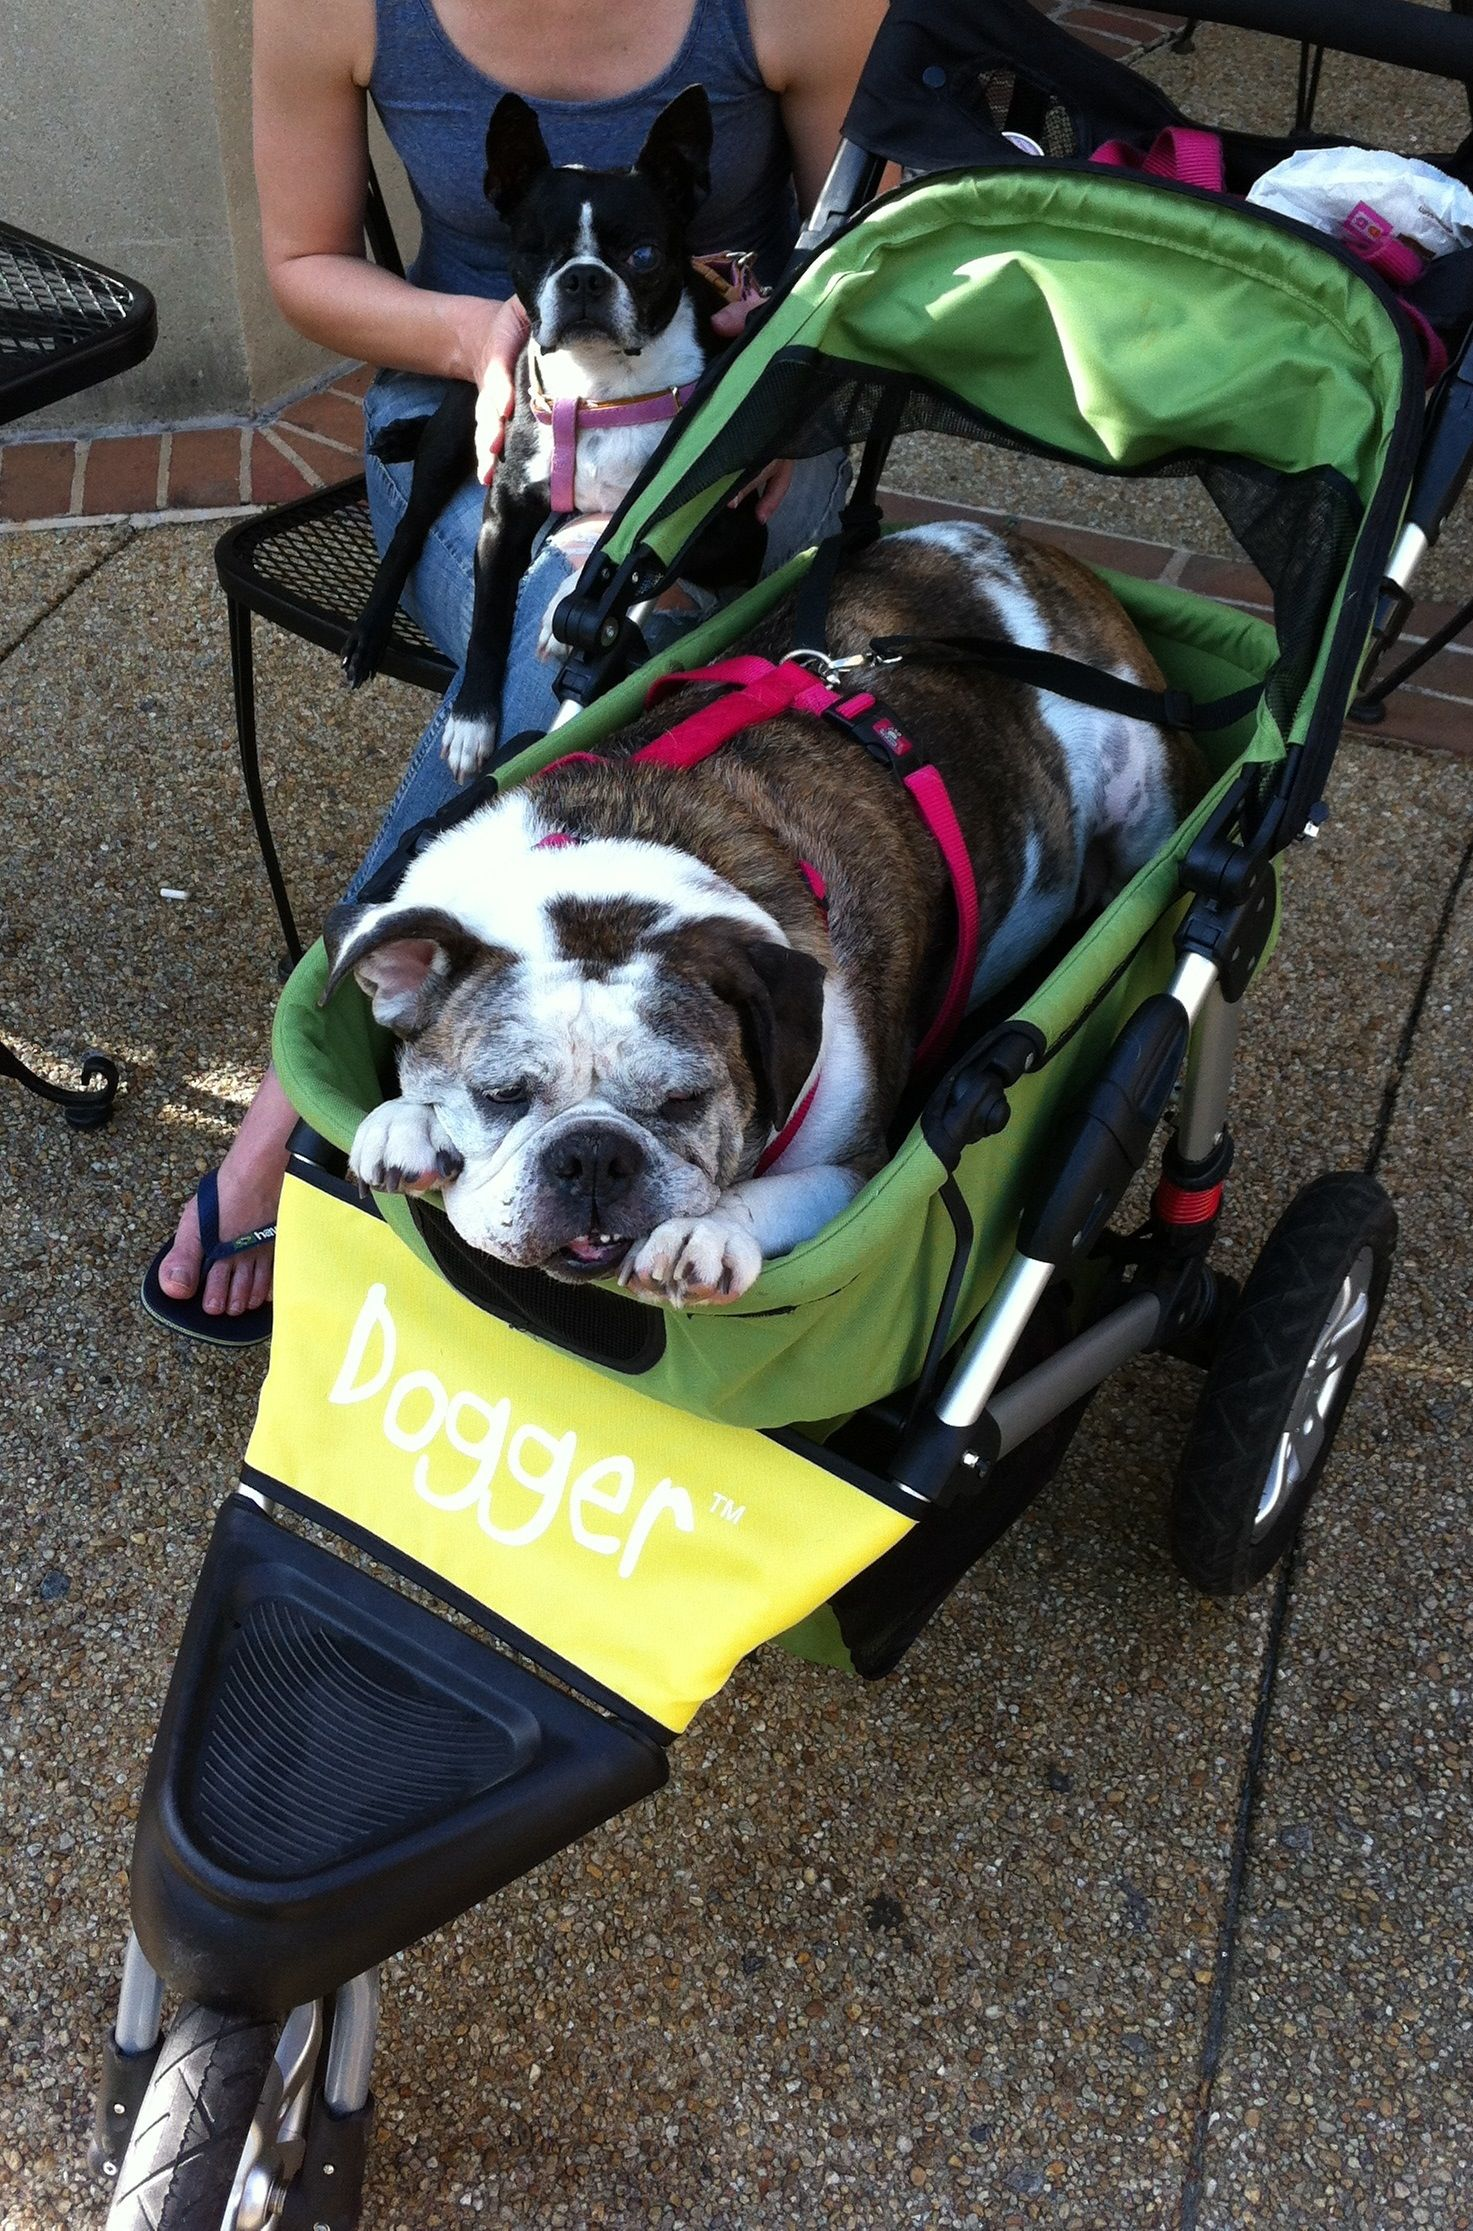 Quot Here Is A Pic Of Ponchatoula In Her Dogger With Her One Eyed Boston Terrier Sister Winky She